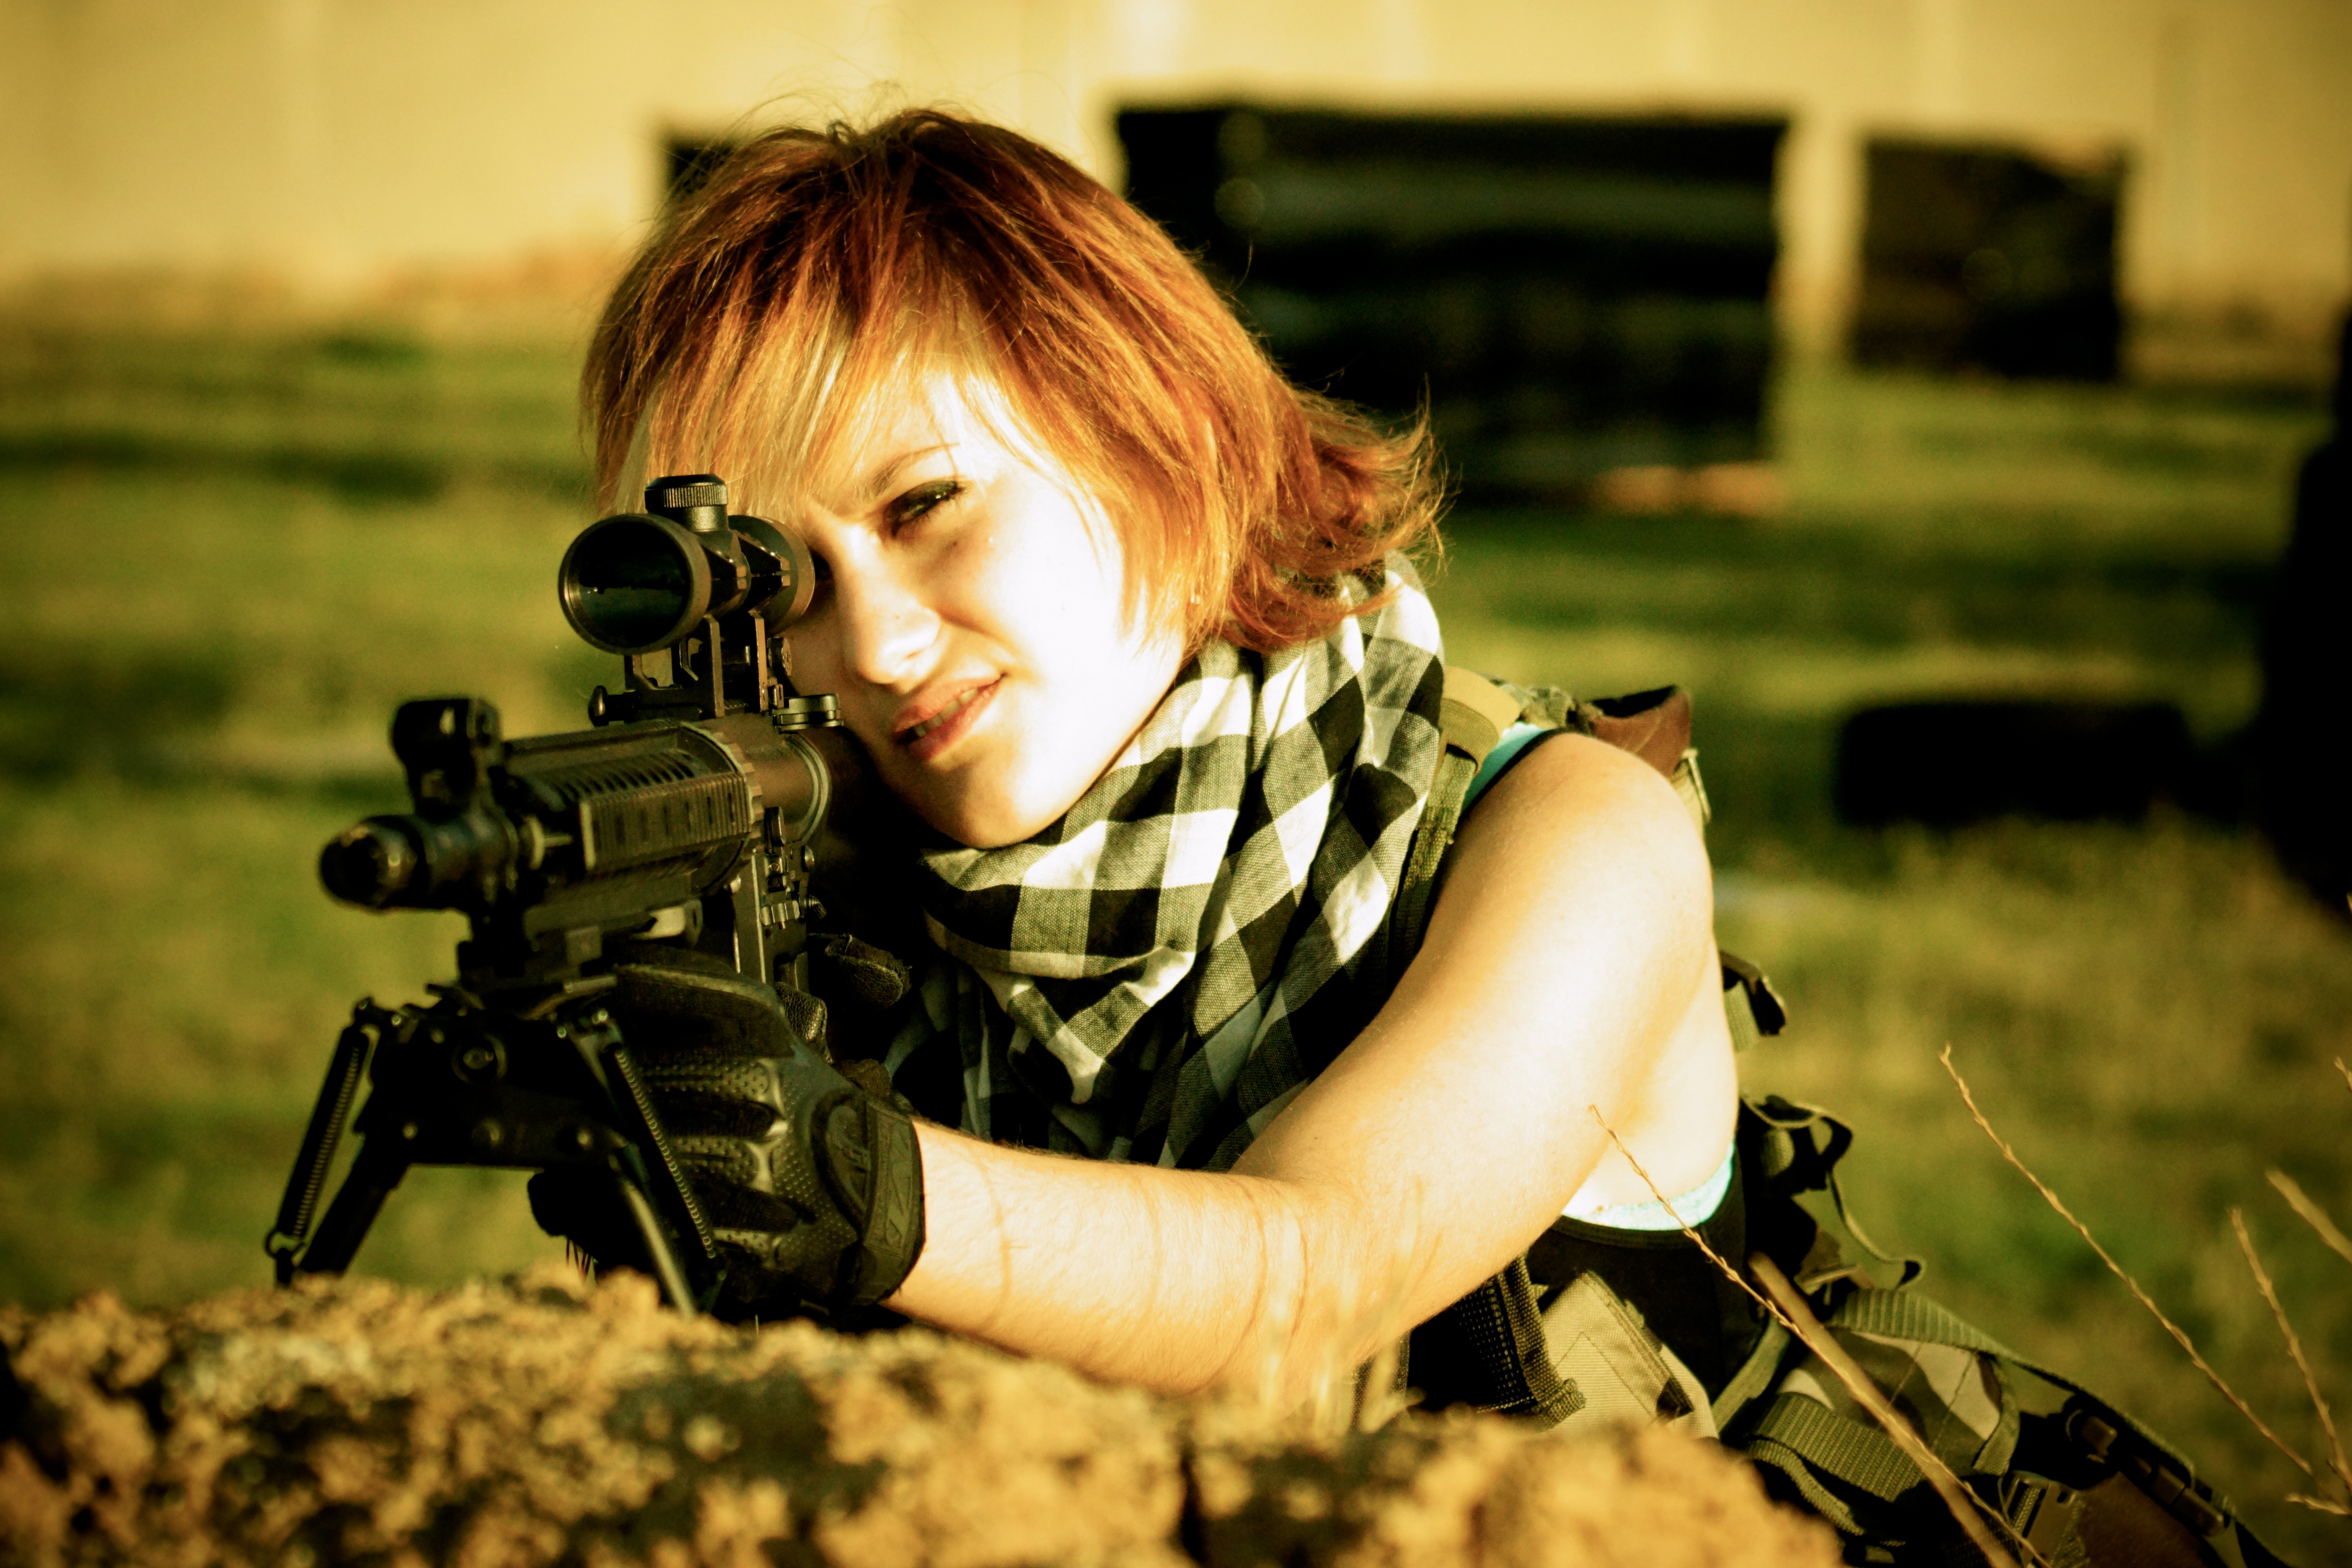 Tight pictures of girls shooting guns